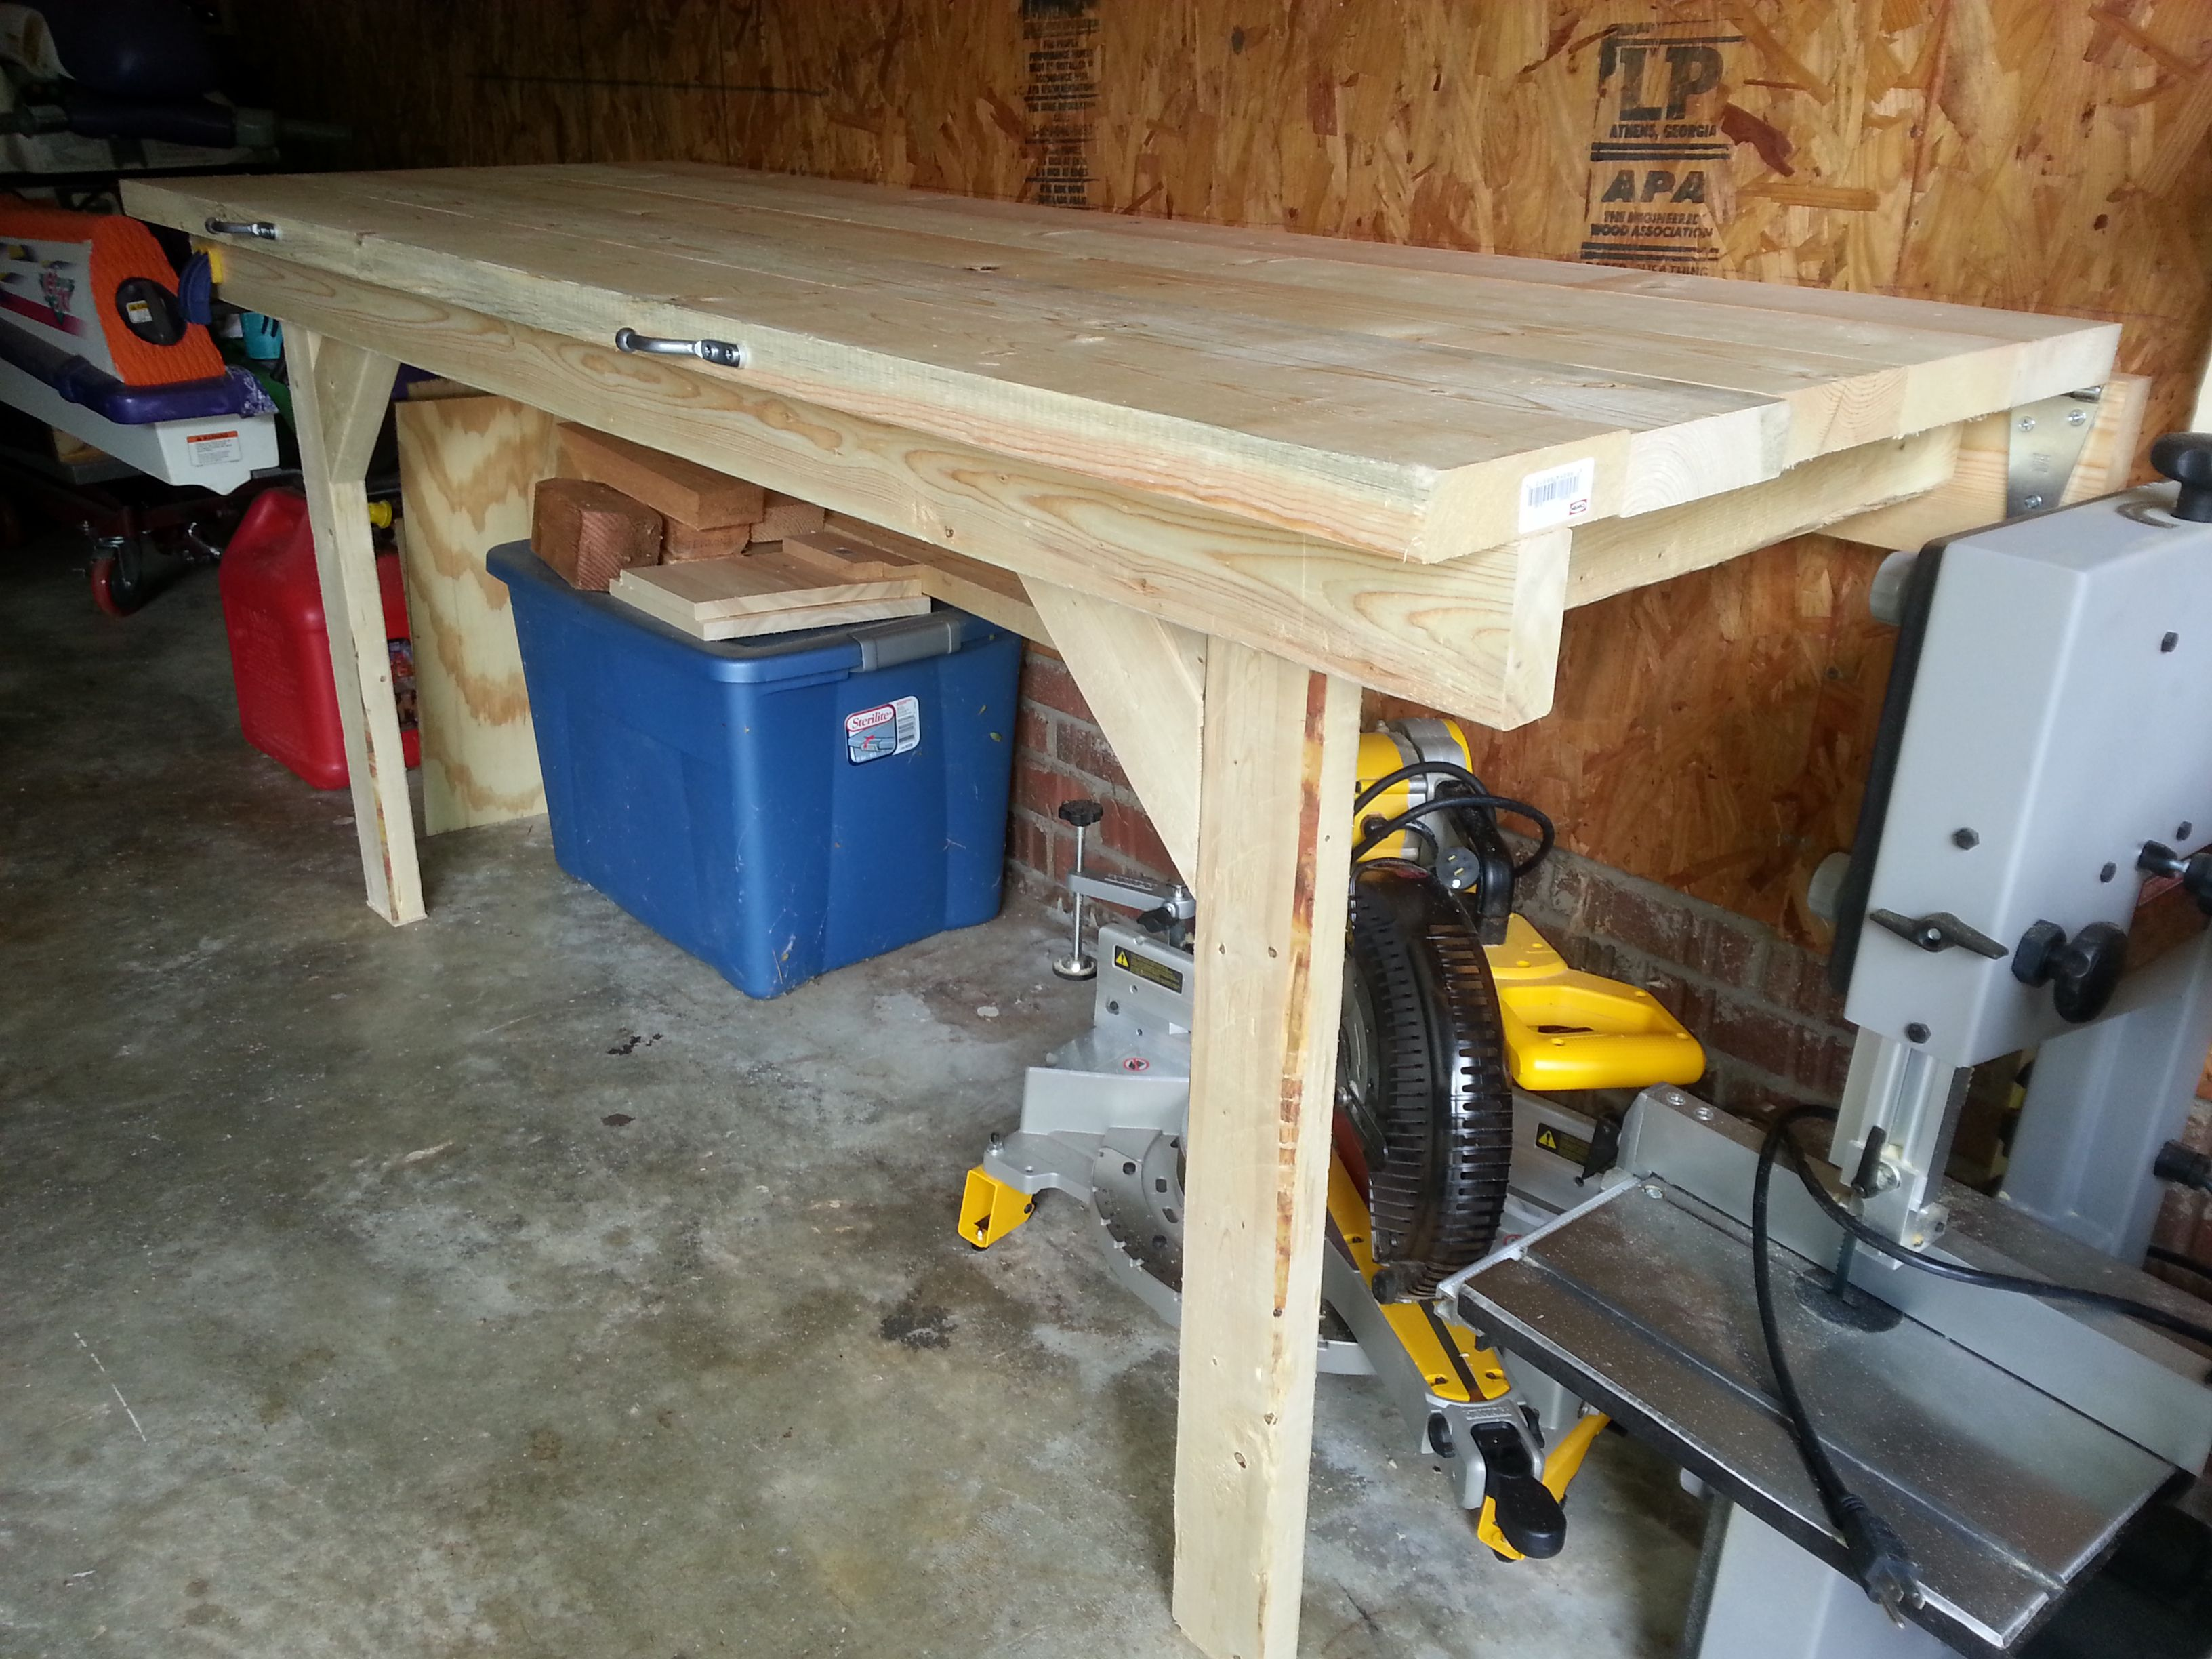 Folding garage workbench do it yourself home projects from ana folding garage workbench do it yourself home projects from ana white solutioingenieria Image collections